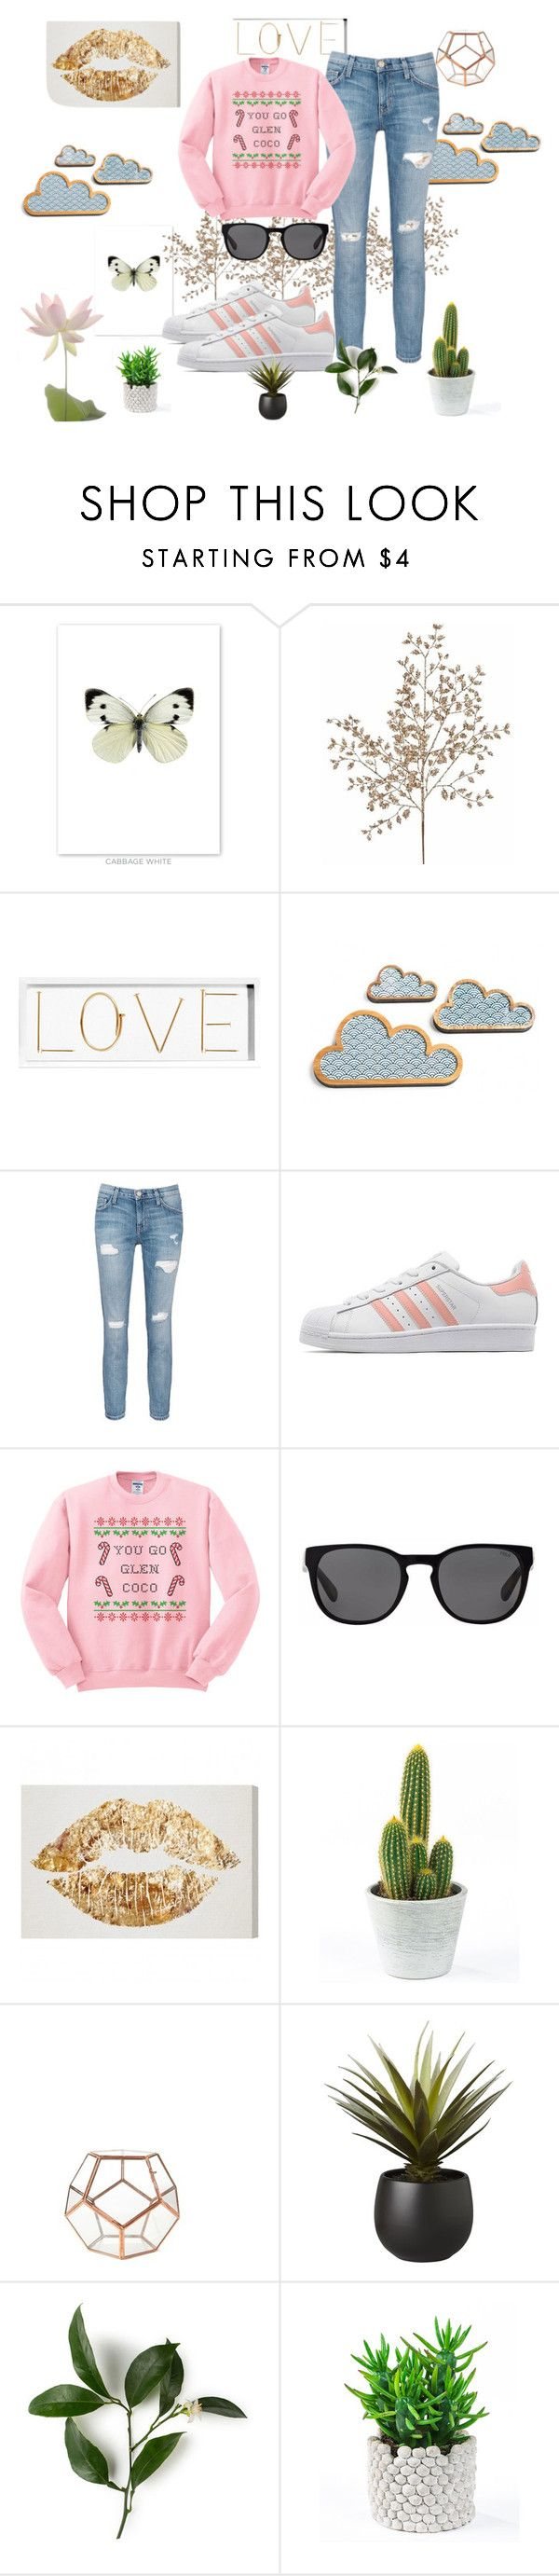 """""""http://www.polyvore.com/cgi/group.join?id=198631."""" by emina-h15 on Polyvore featuring Oliver Gal Artist Co., Current/Elliott, adidas Originals, Polo Ralph Lauren and CB2"""